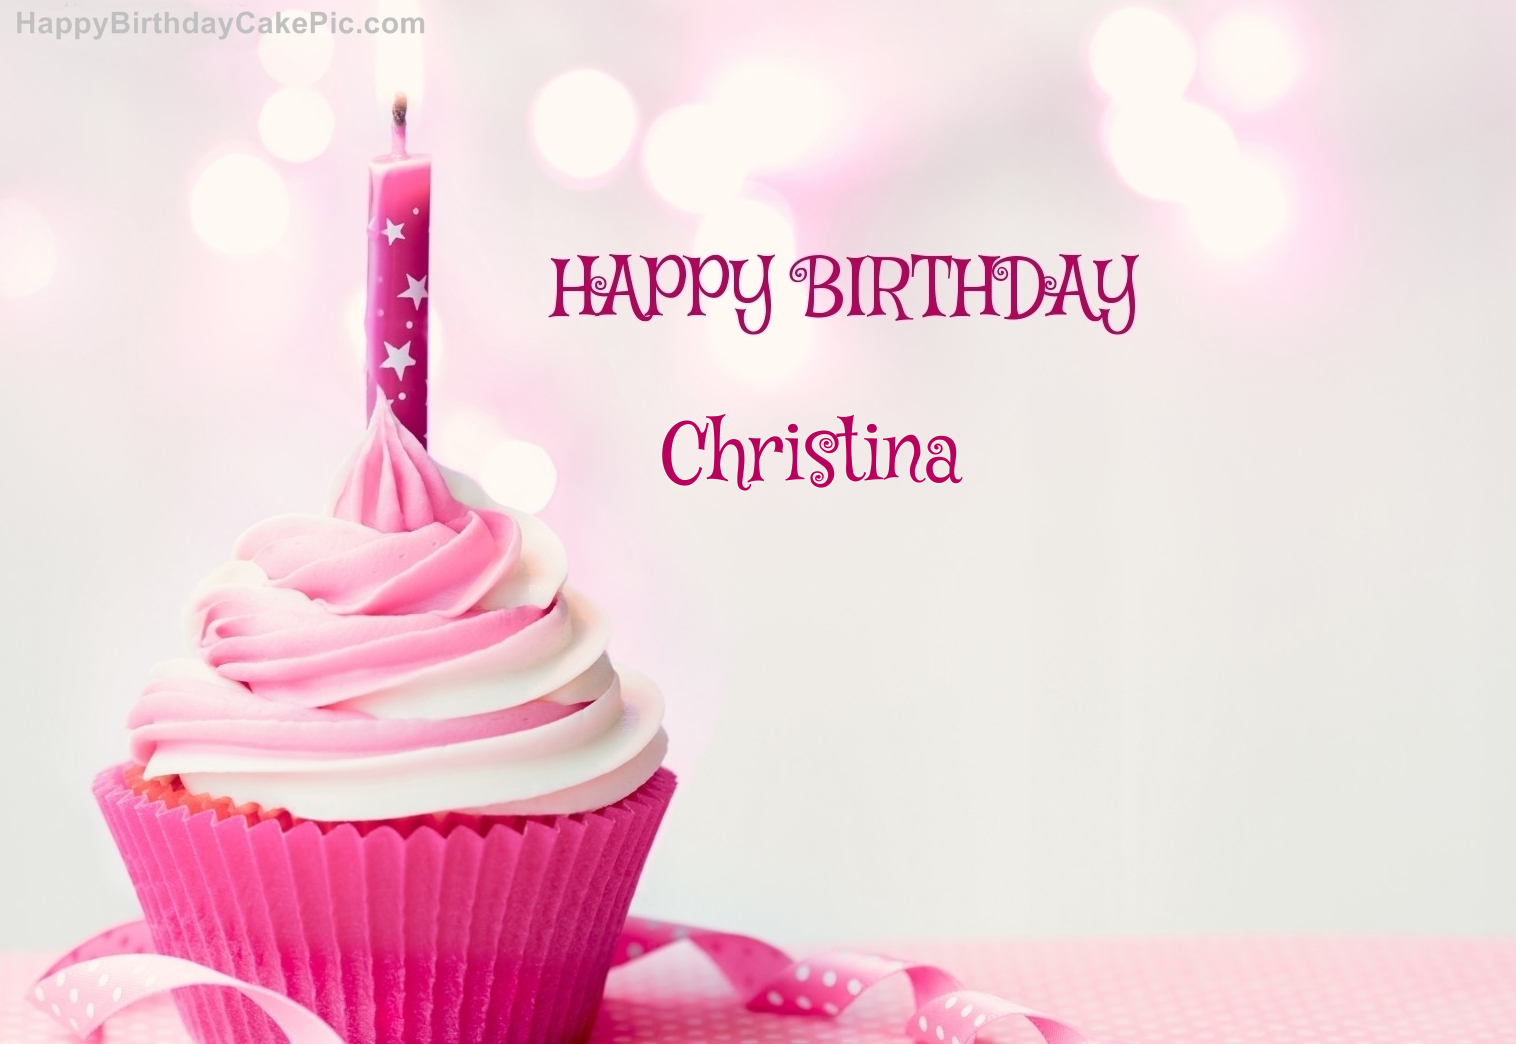 Happy Birthday Cupcake Candle Pink Cake For Christina